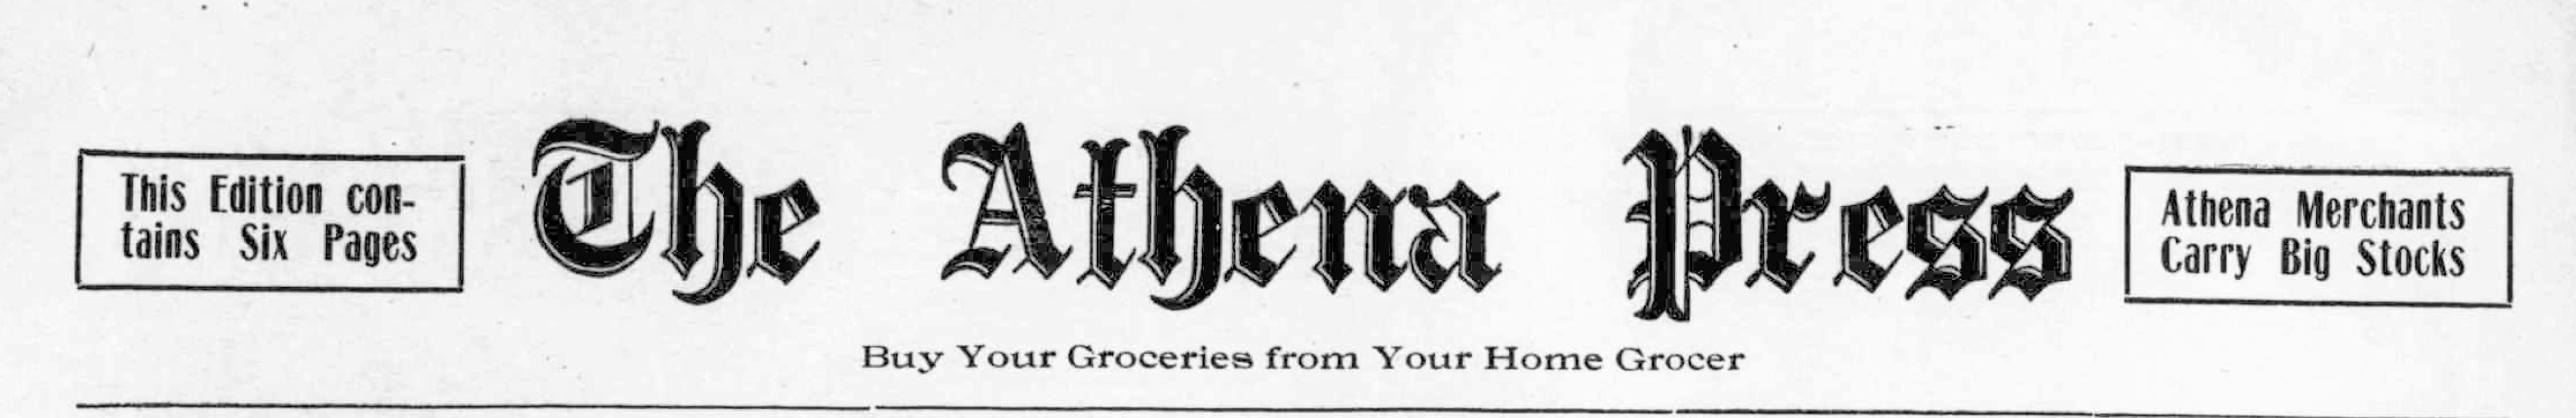 The Athena press. (Athena, Umatilla County, Or.) August 14, 1908, Image 71. http://oregonnews.uoregon.edu/lccn/sn96088356/1908-08-14/ed-1/seq-1/